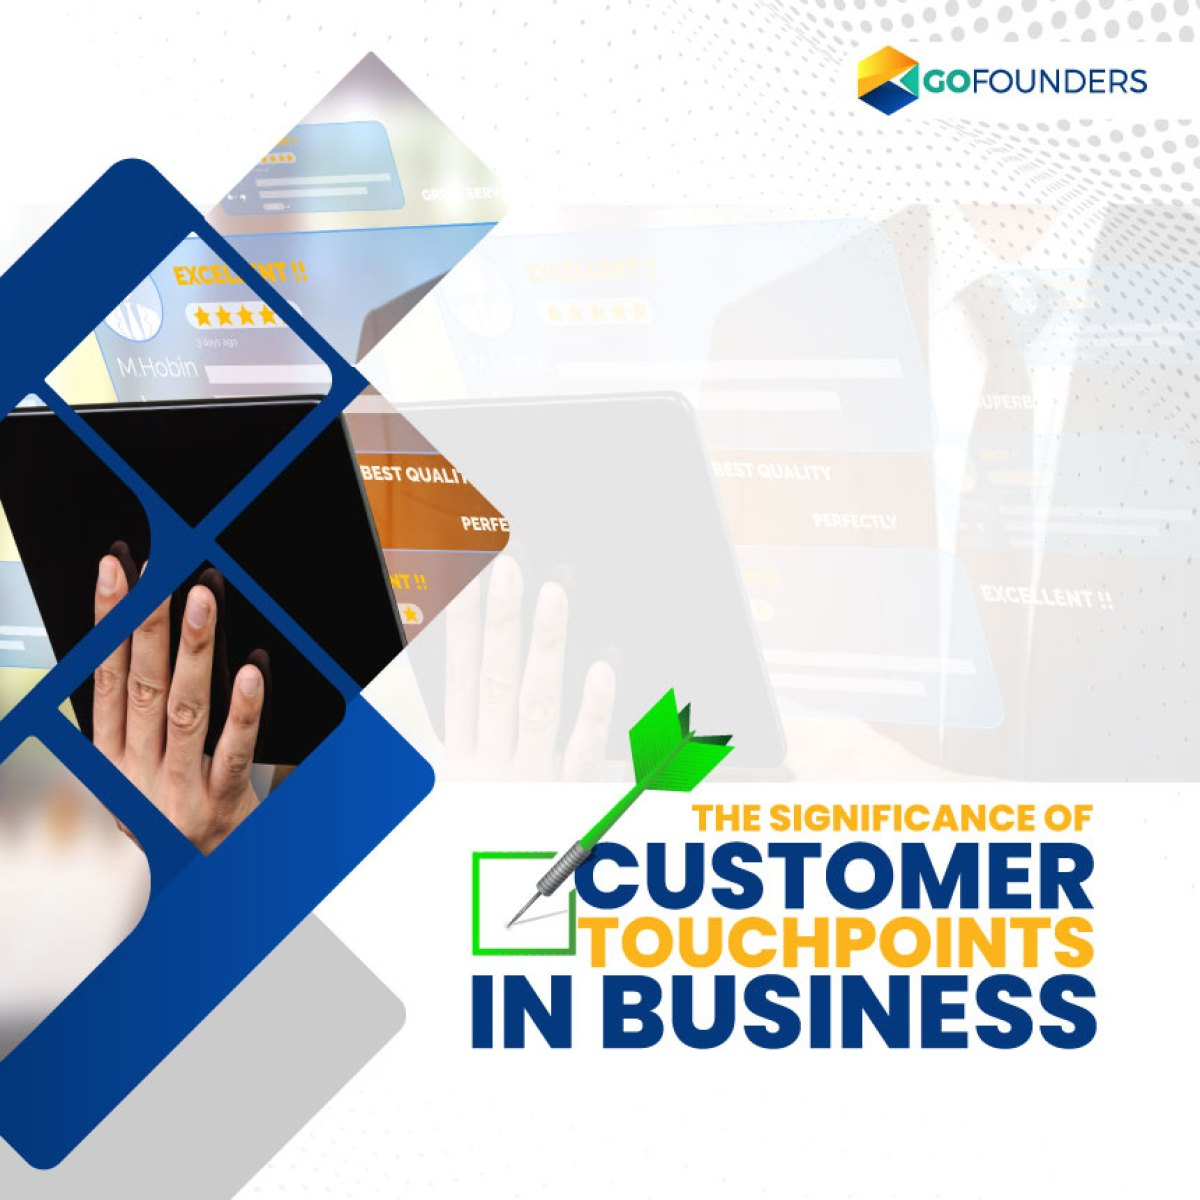 While operating your business, you need to interact with customers on several fronts and levels. This interaction shapes your branding, marketing, and sales.